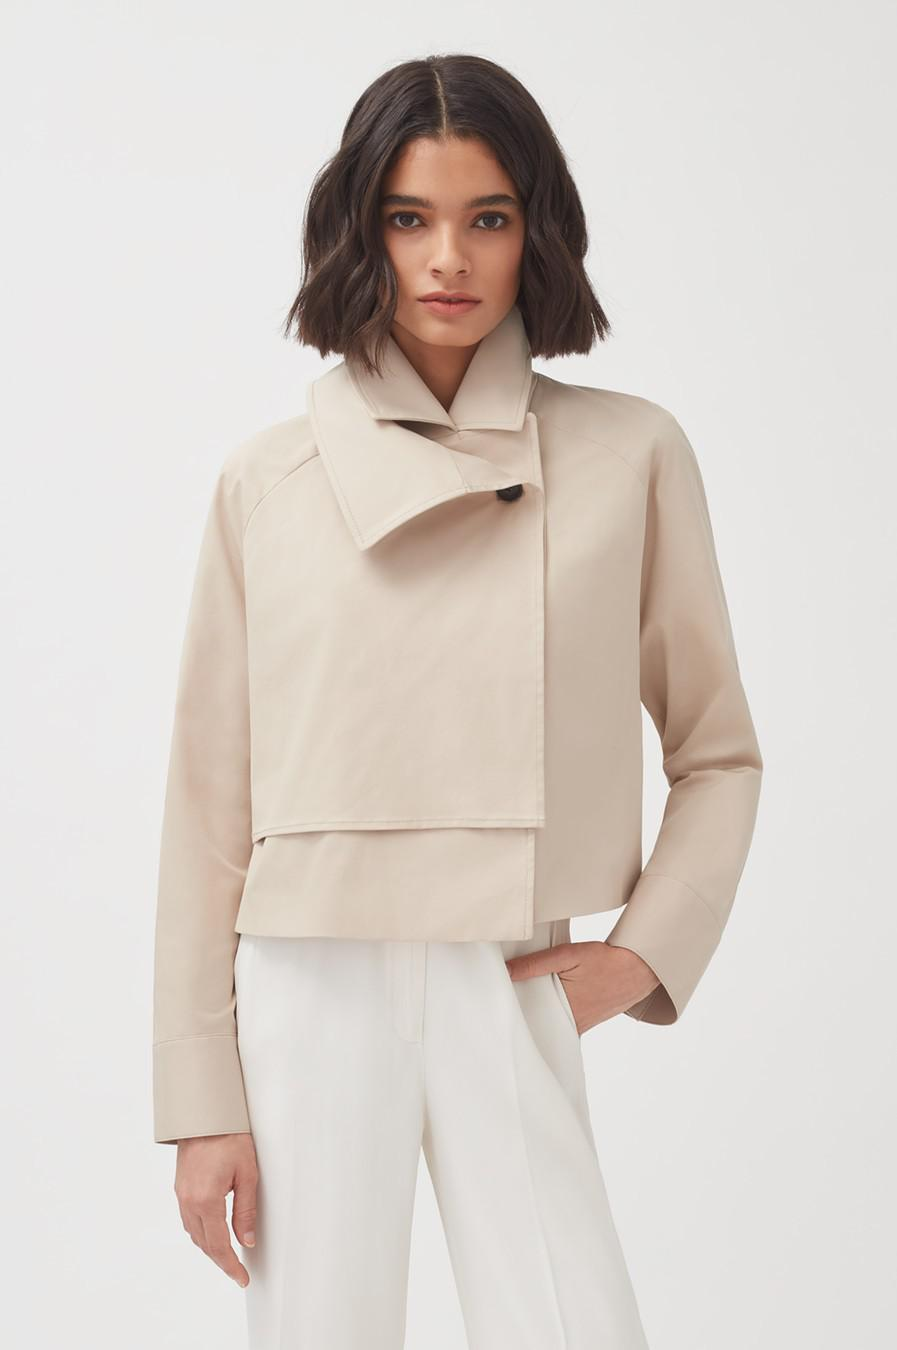 Women's Cropped Trench in Dune | Size: L/XL | Cotton Elastane Blend by Cuyana 2